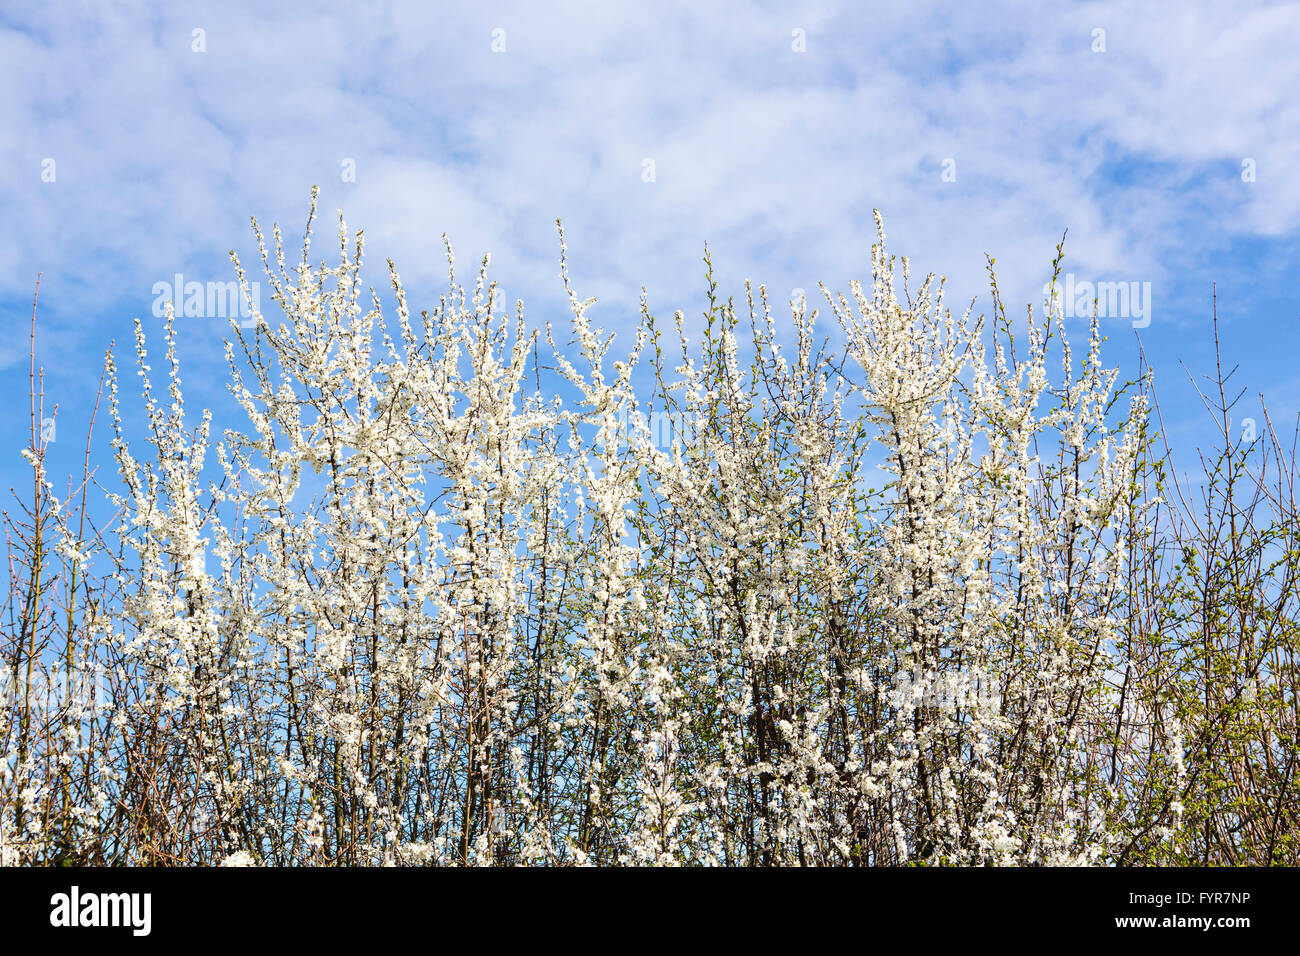 Tiny White Flowers On A Hedgerow Thorn Bush In The Spring Sunshine